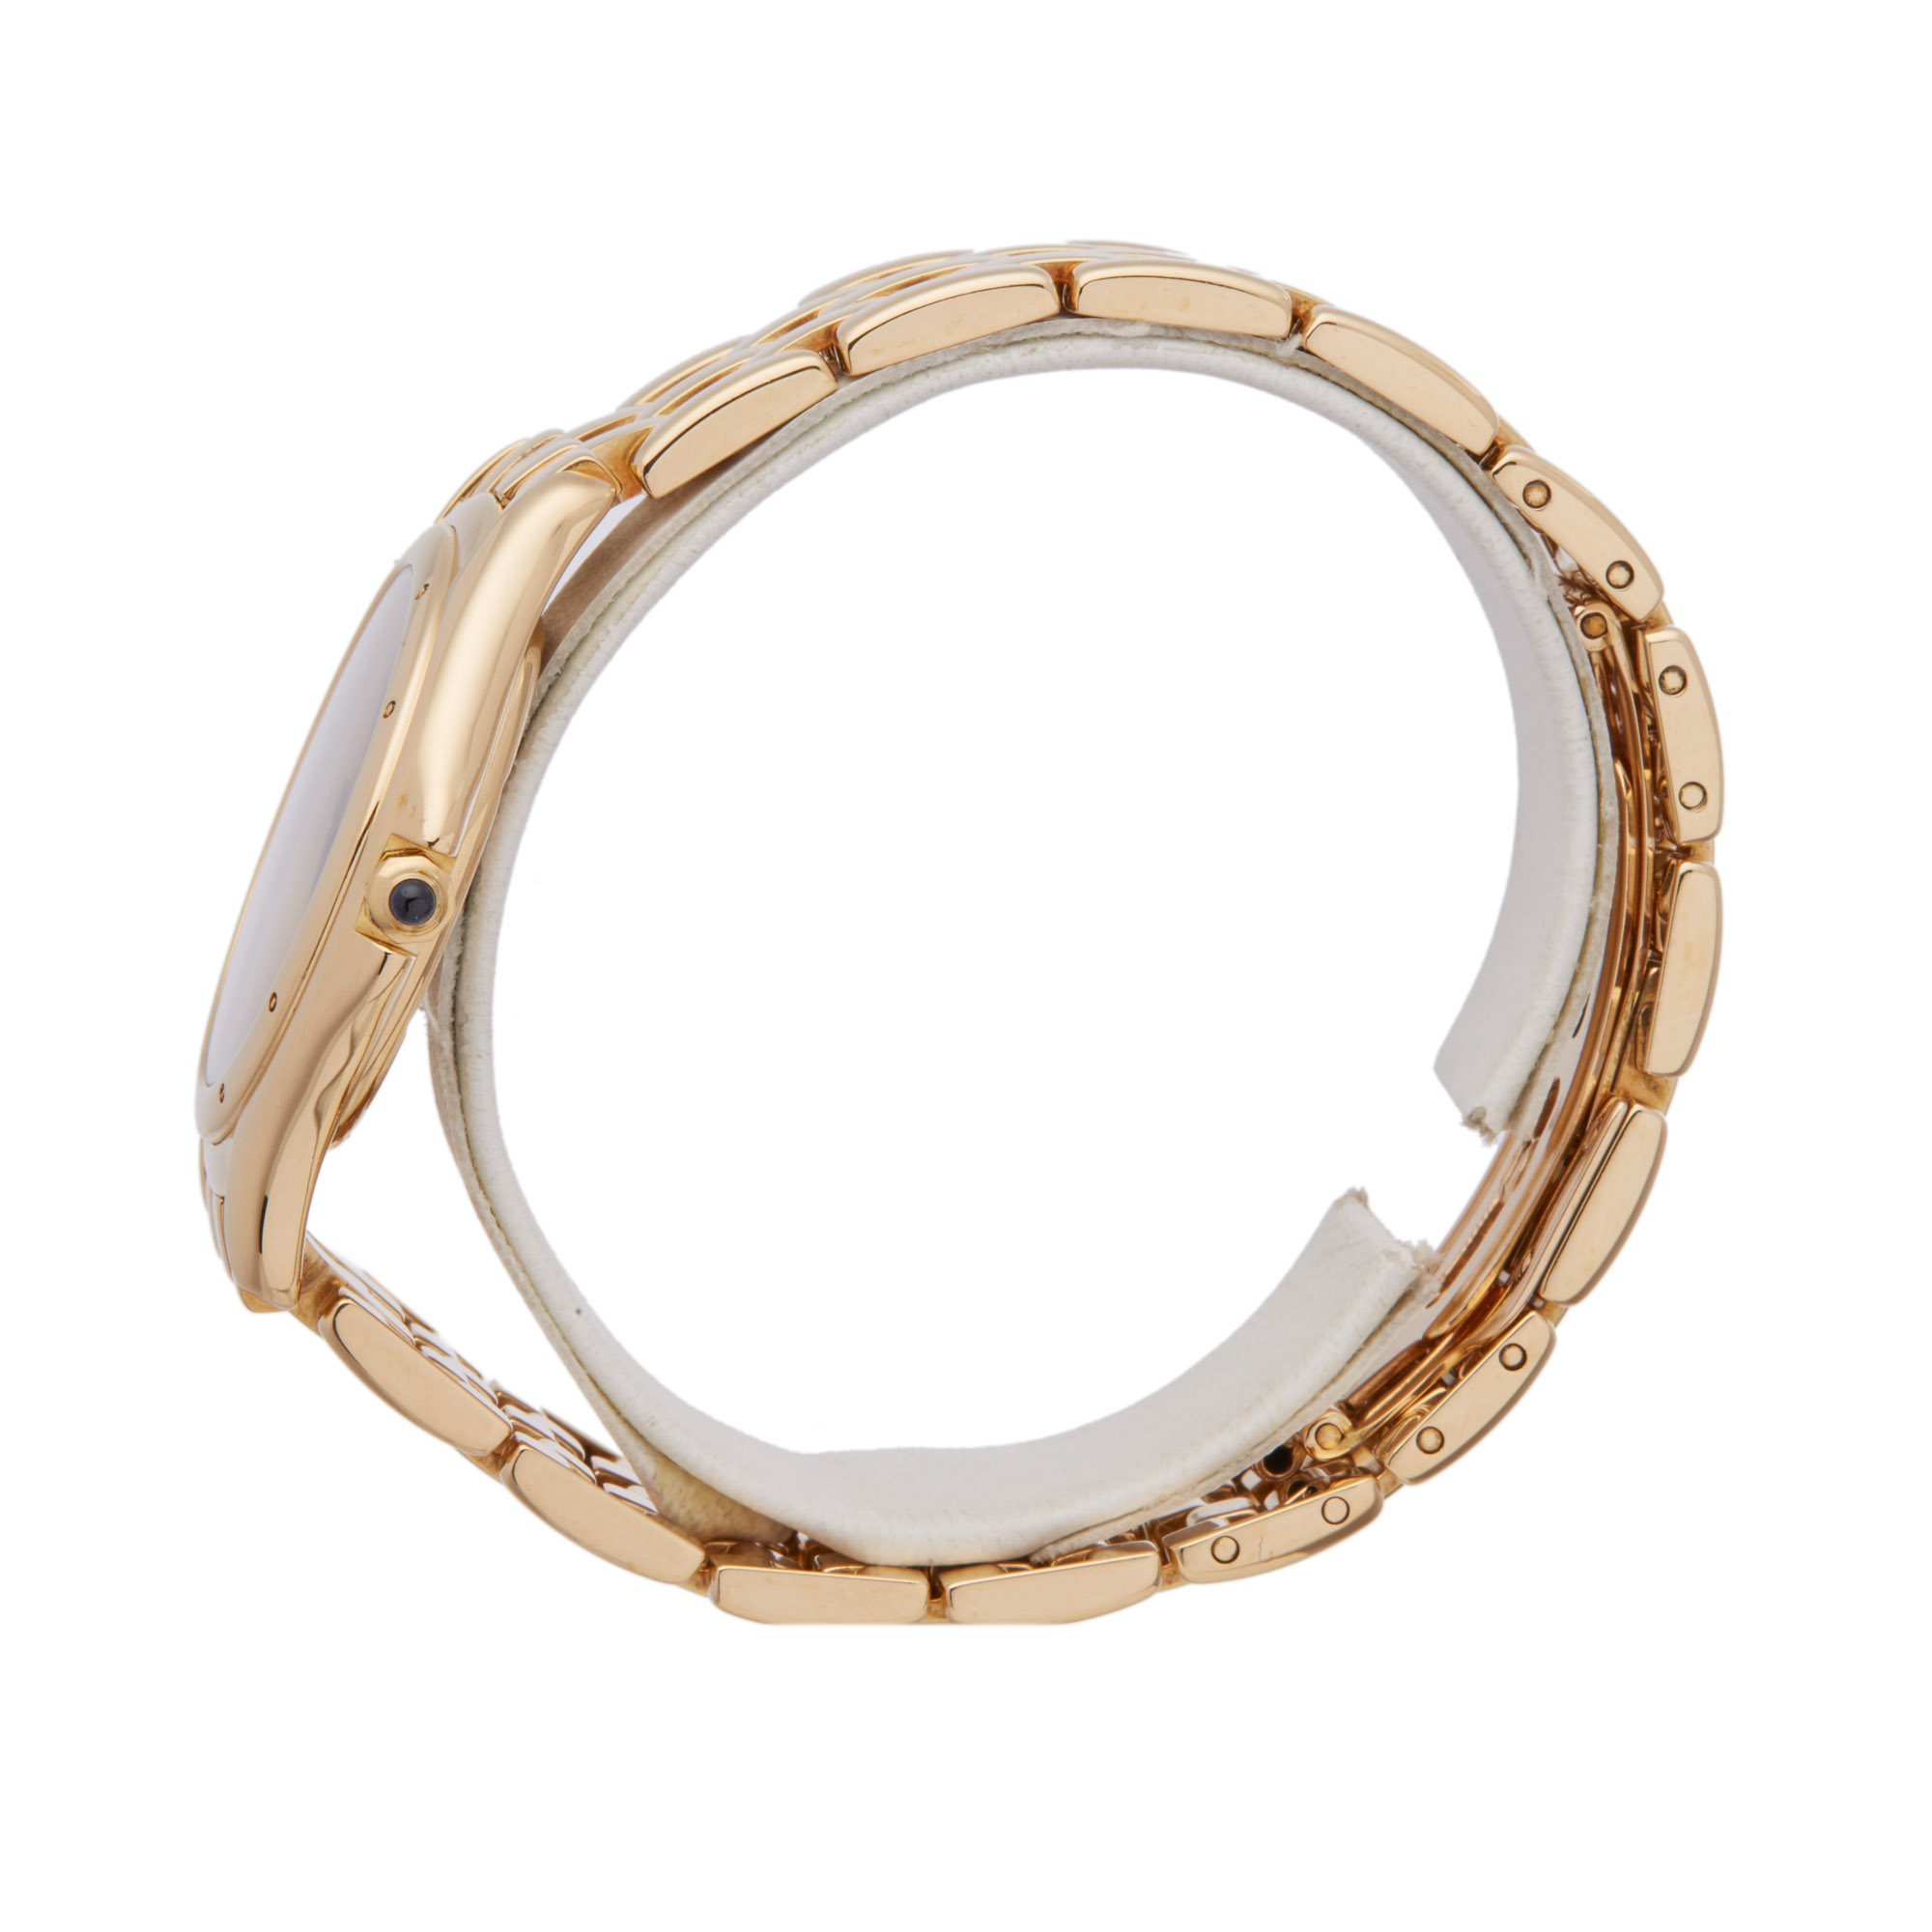 Cartier Panthère Cougar 116000R Unisex Yellow Gold Watch - Image 7 of 8